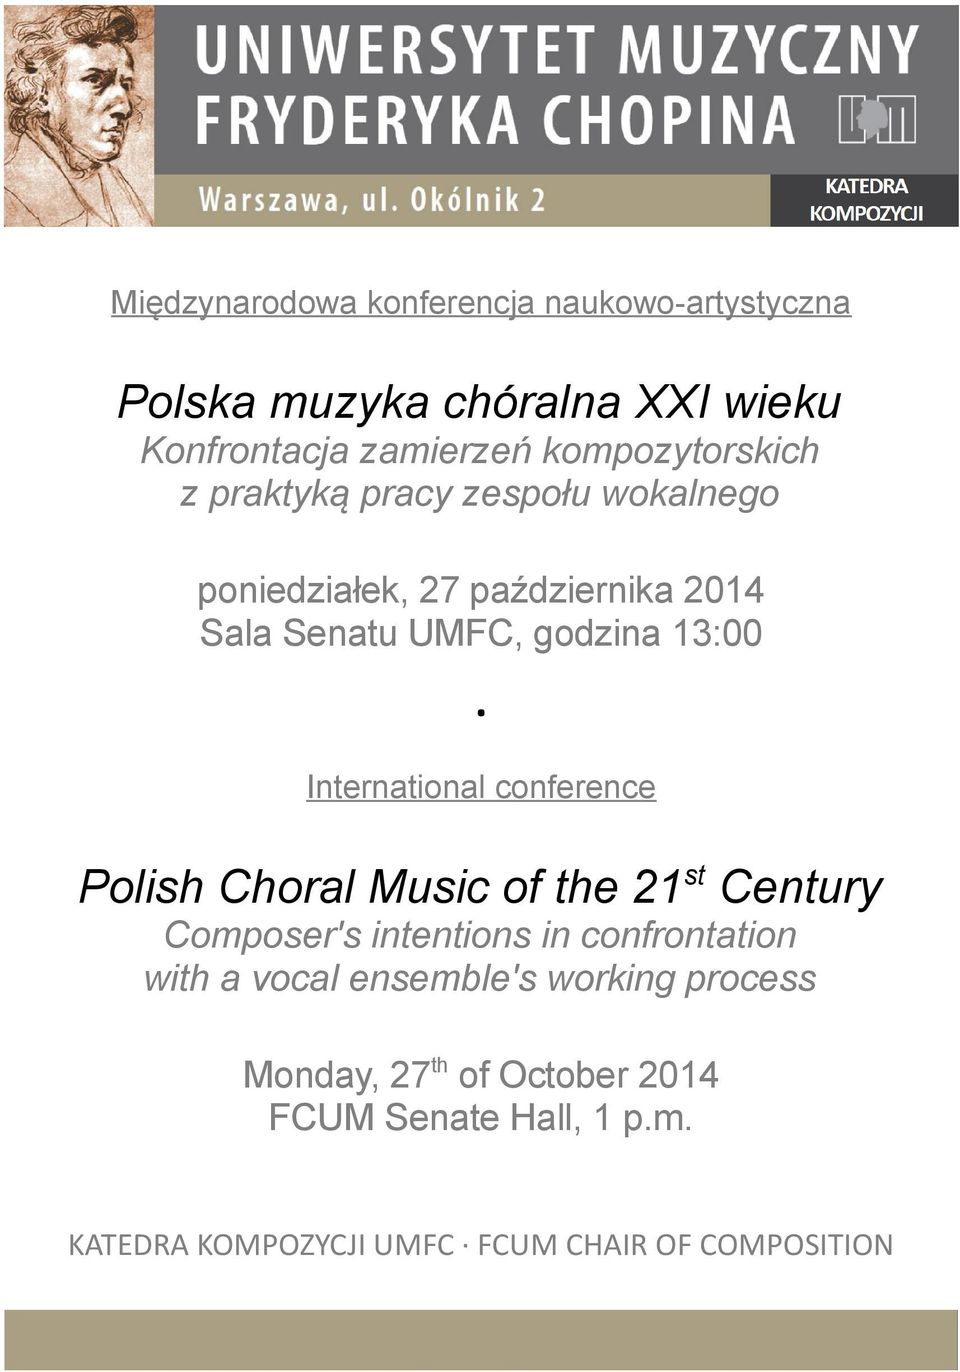 13:00 International conference Polish Choral Music of the 21st Century Composer's intentions in confrontation with a